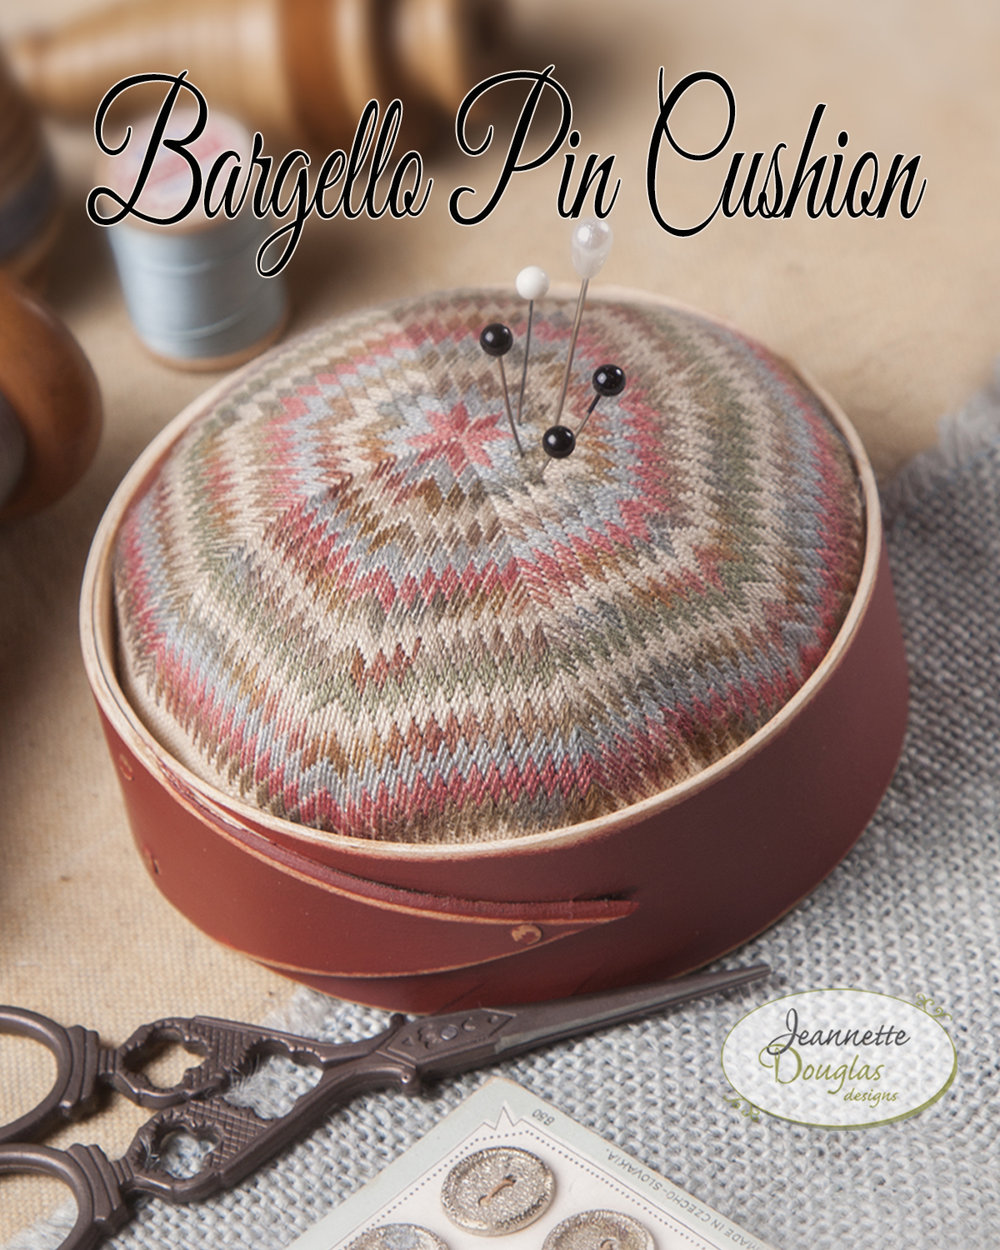 Bargello Pin cushion (1).jpg